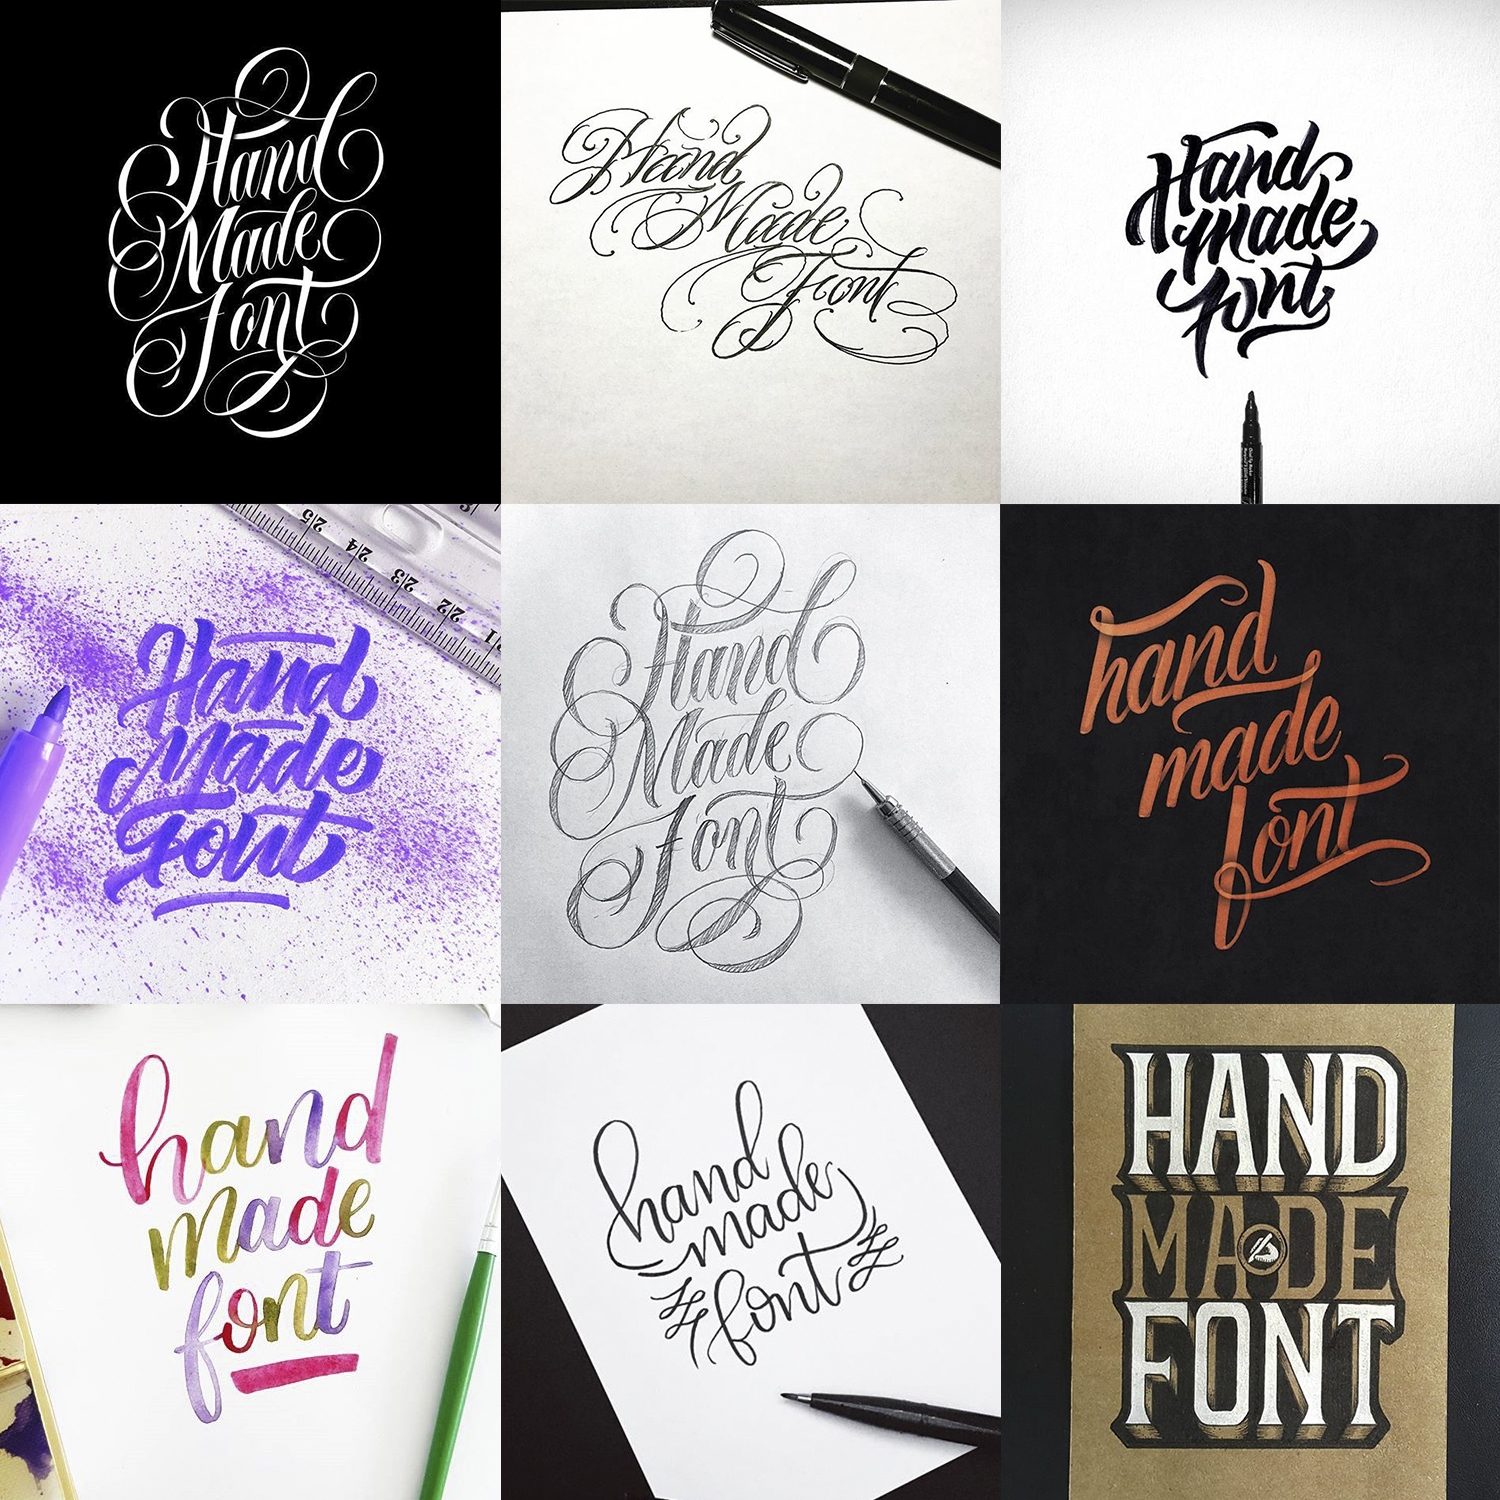 handcrafted logos for handmade font